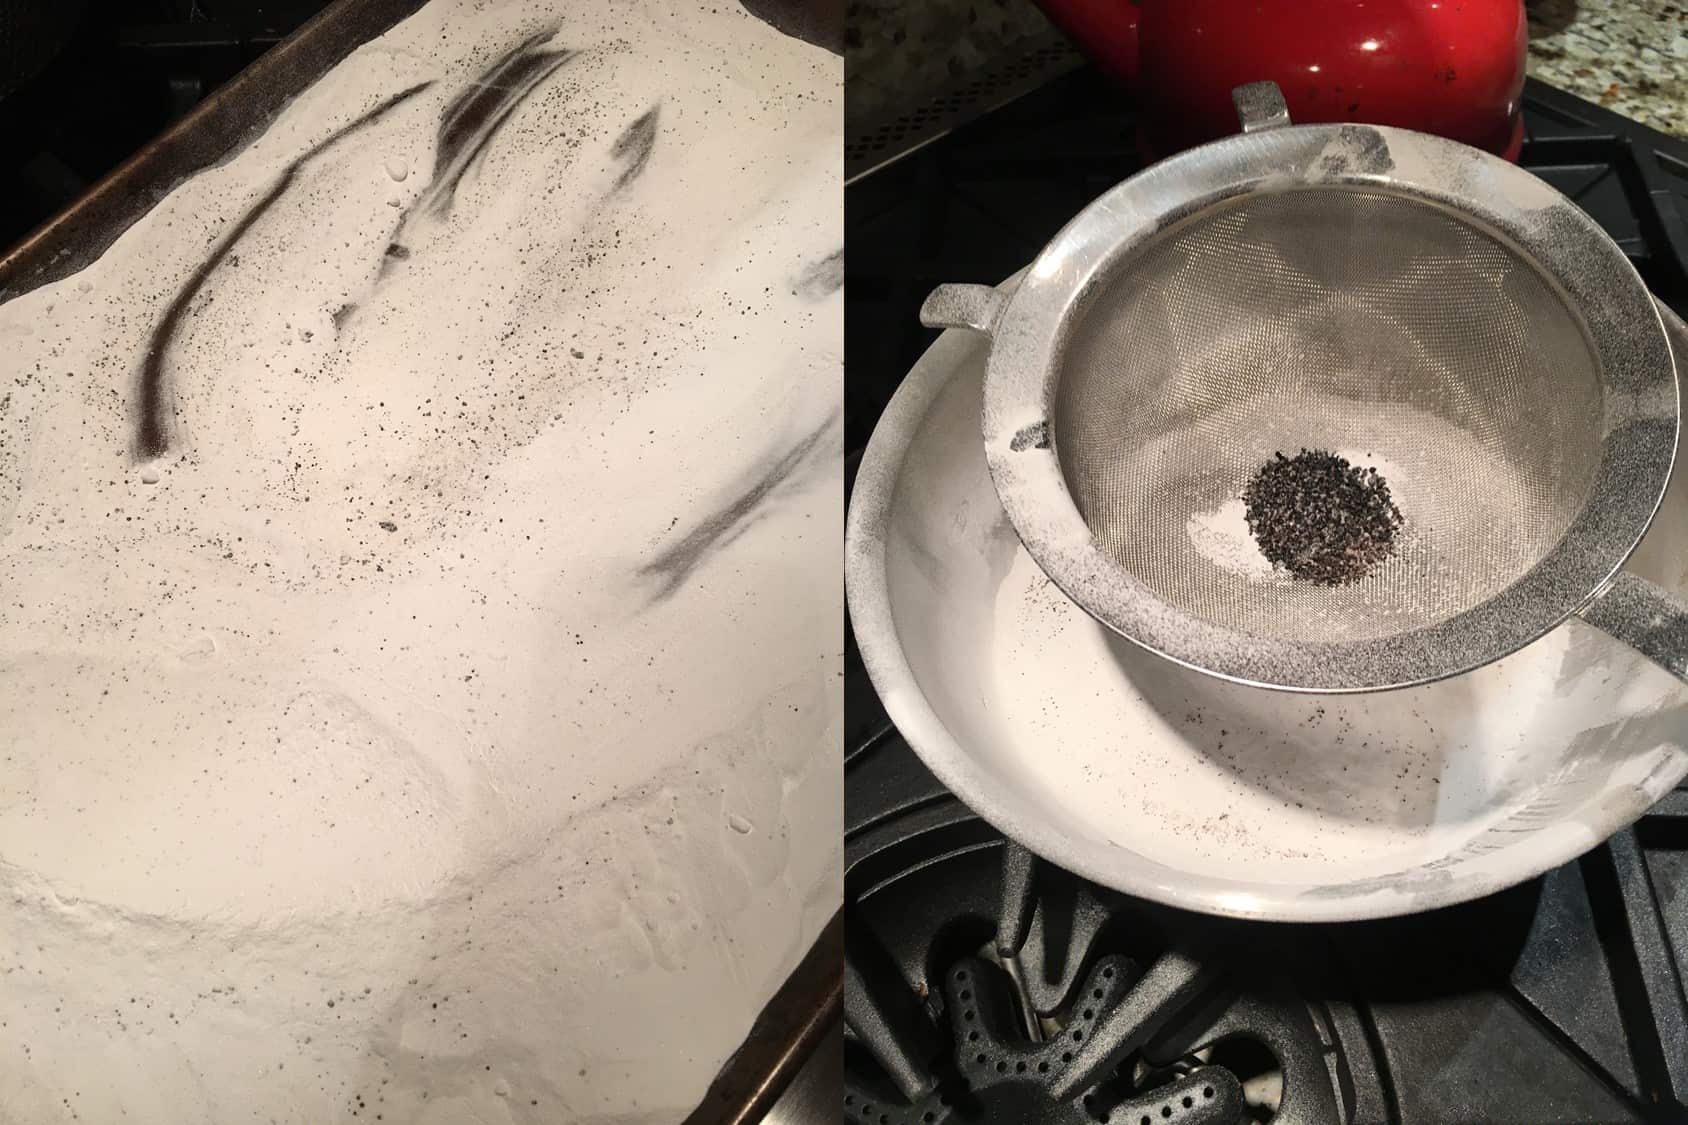 Photo of burned sugar in baked baking soda when making washing soda (left) and burned sugar in a fine sieve (right). https://trimazing.com/